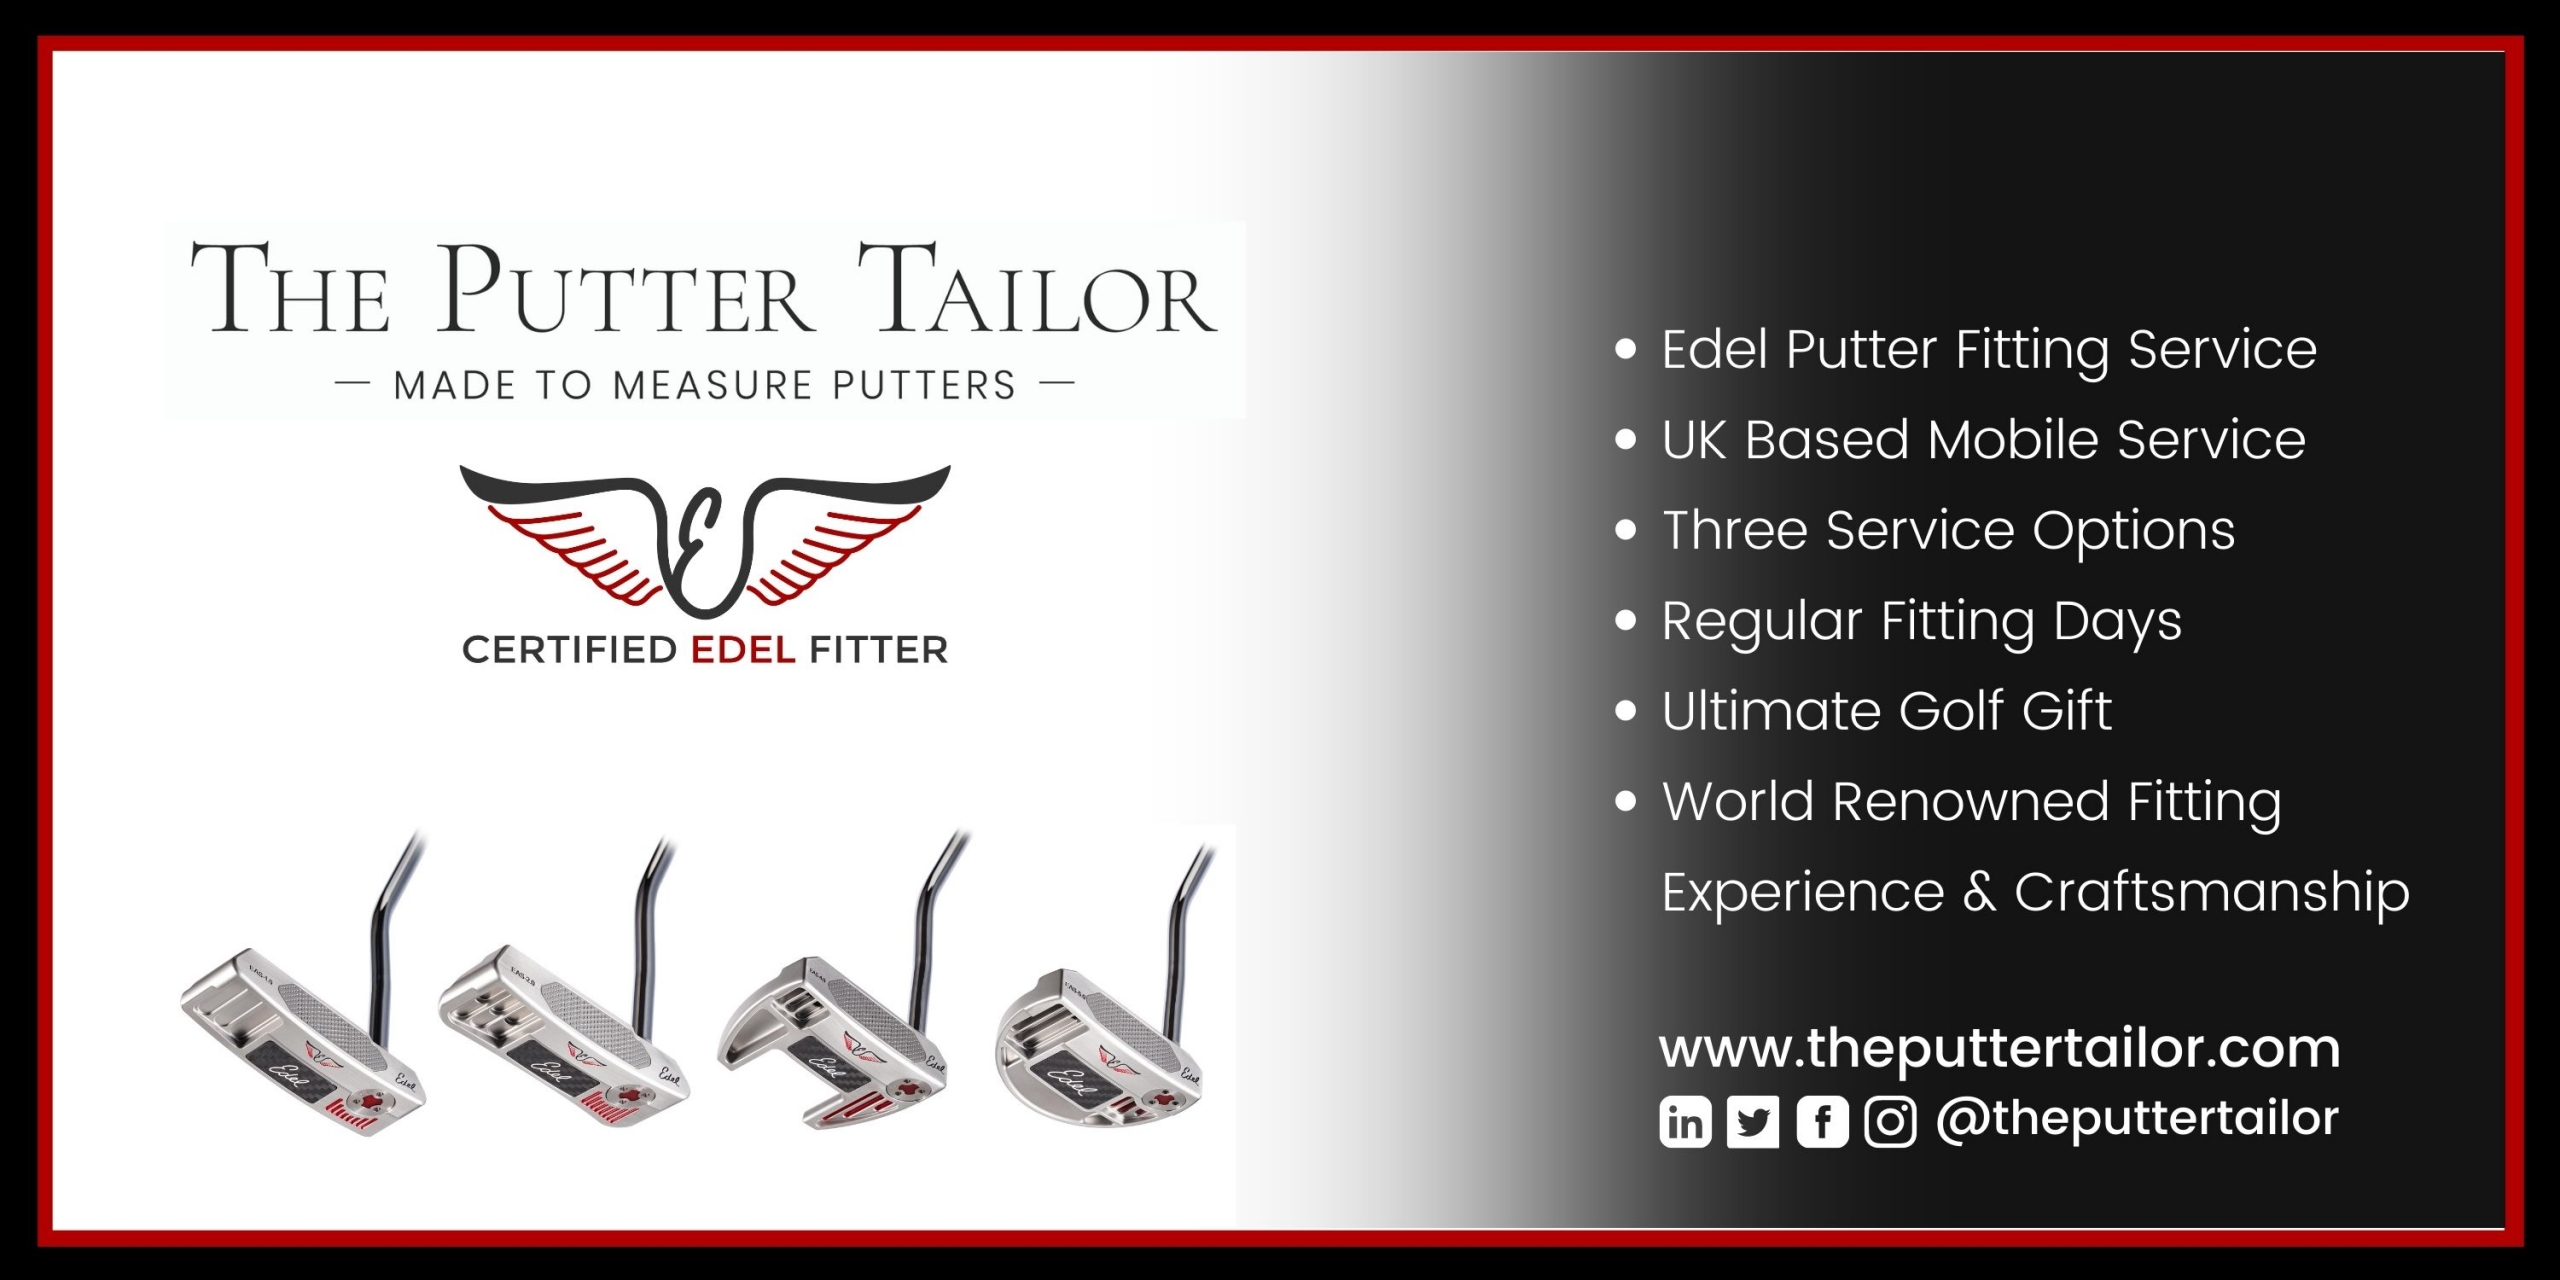 The Putter Tailor Edel Putter Fittings